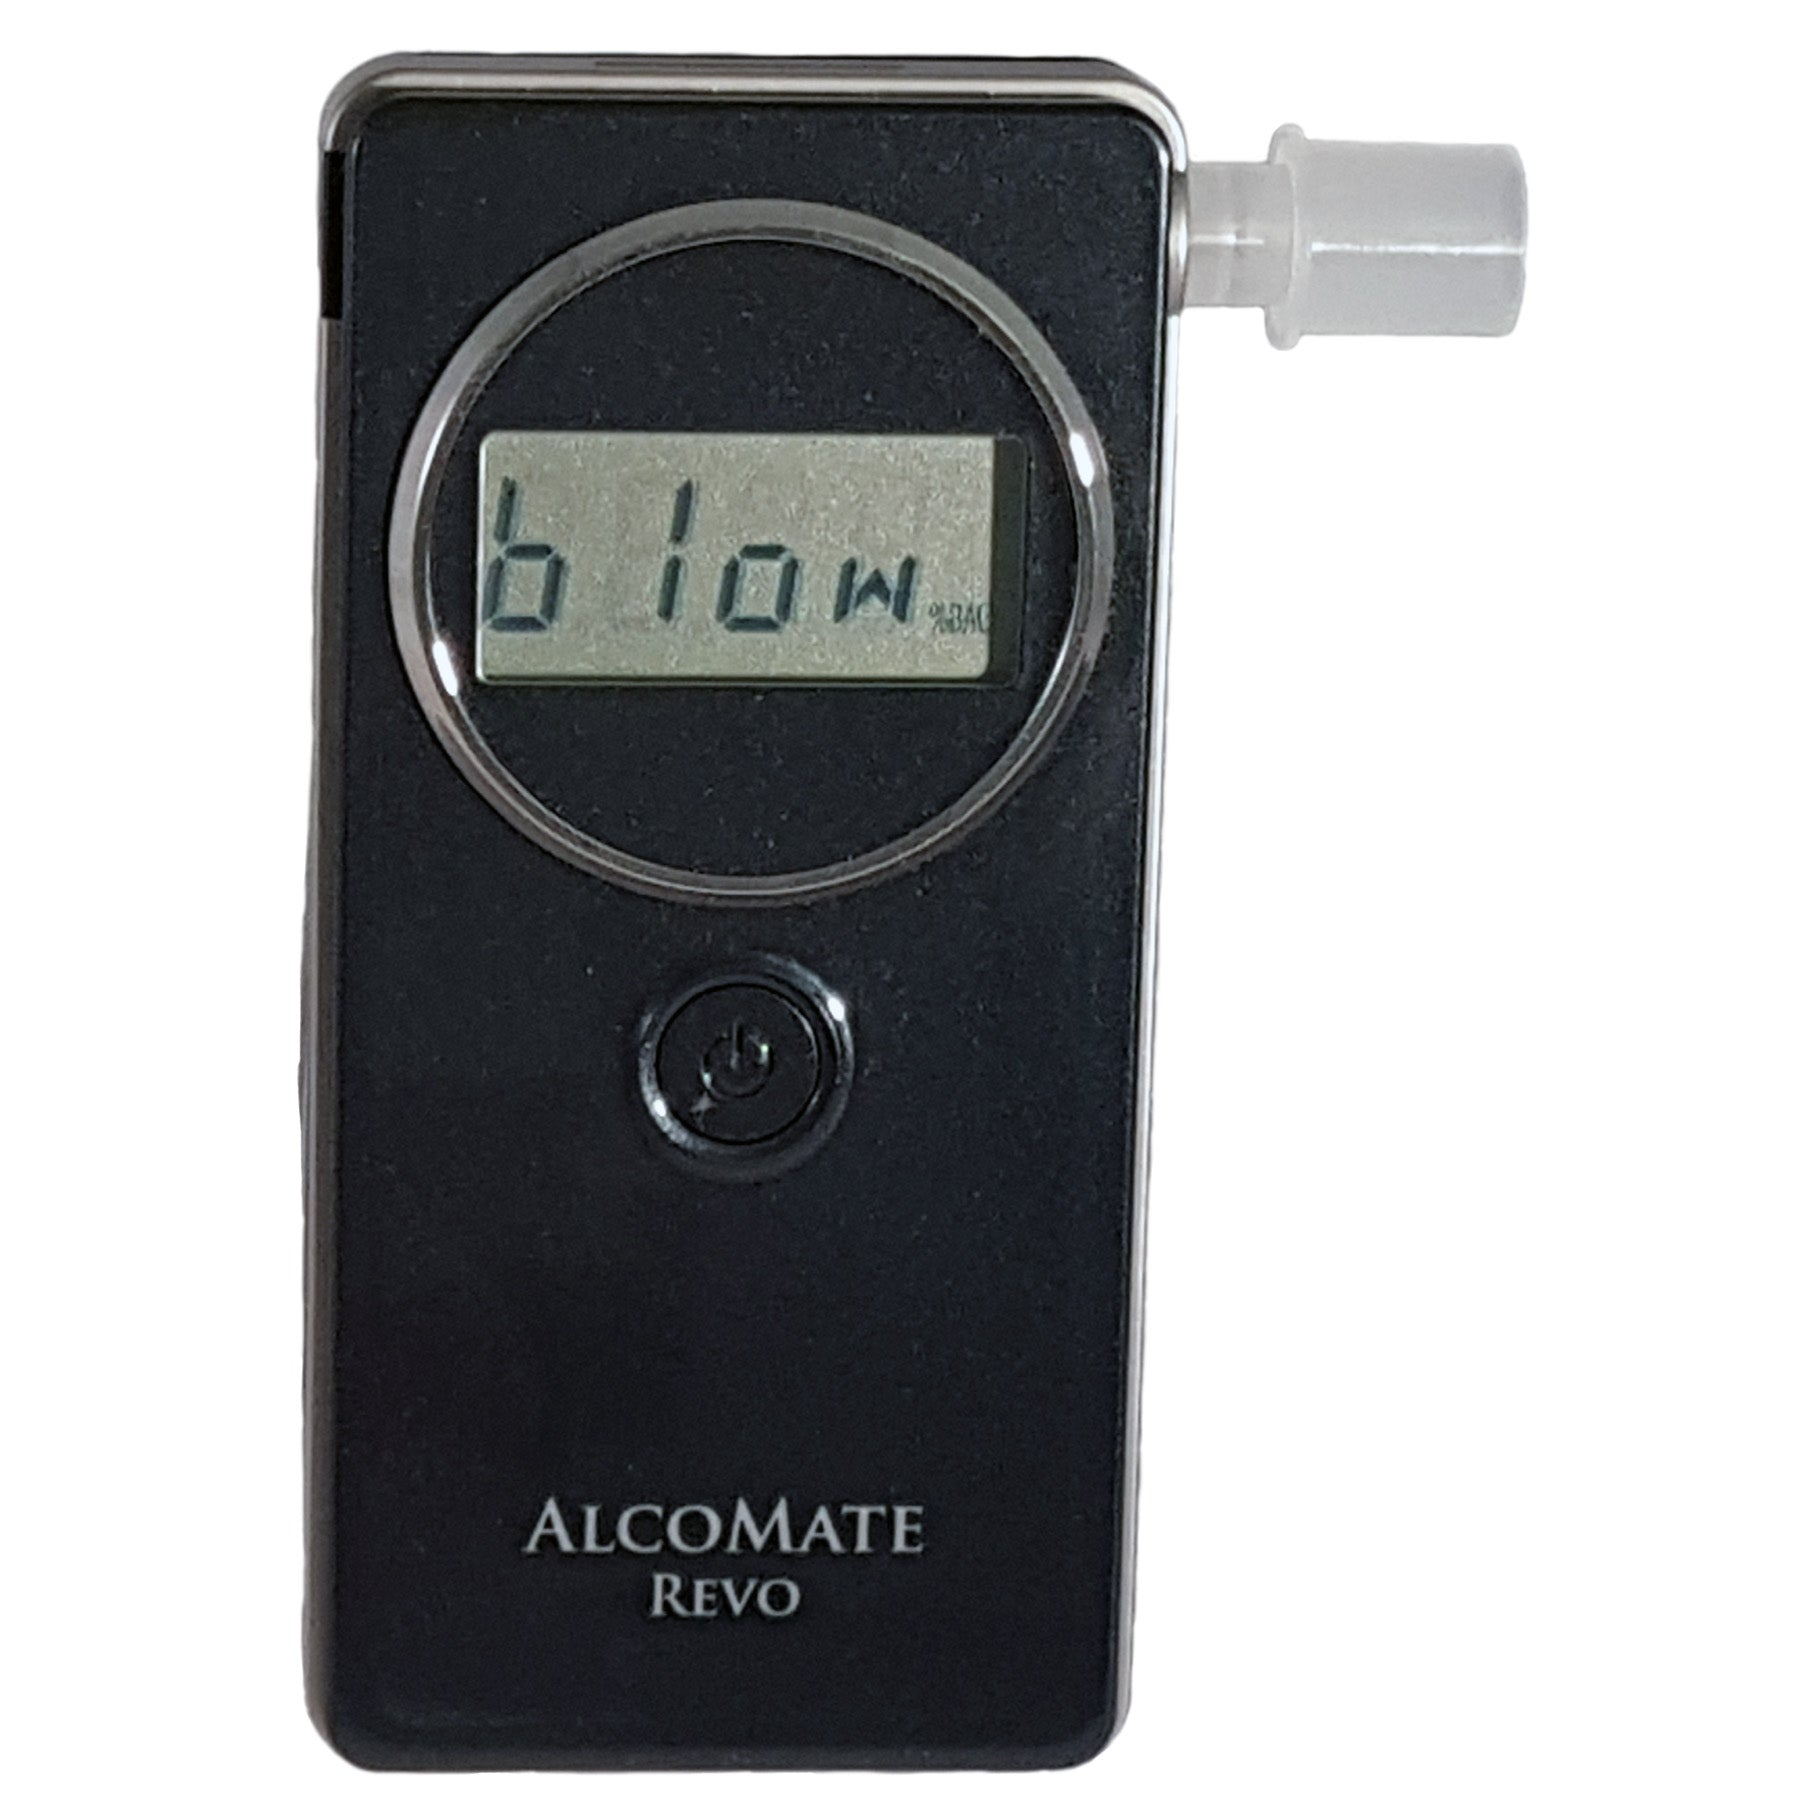 AlcoMate TS200 Fuel Cell Breathalyzer with Deluxe Case